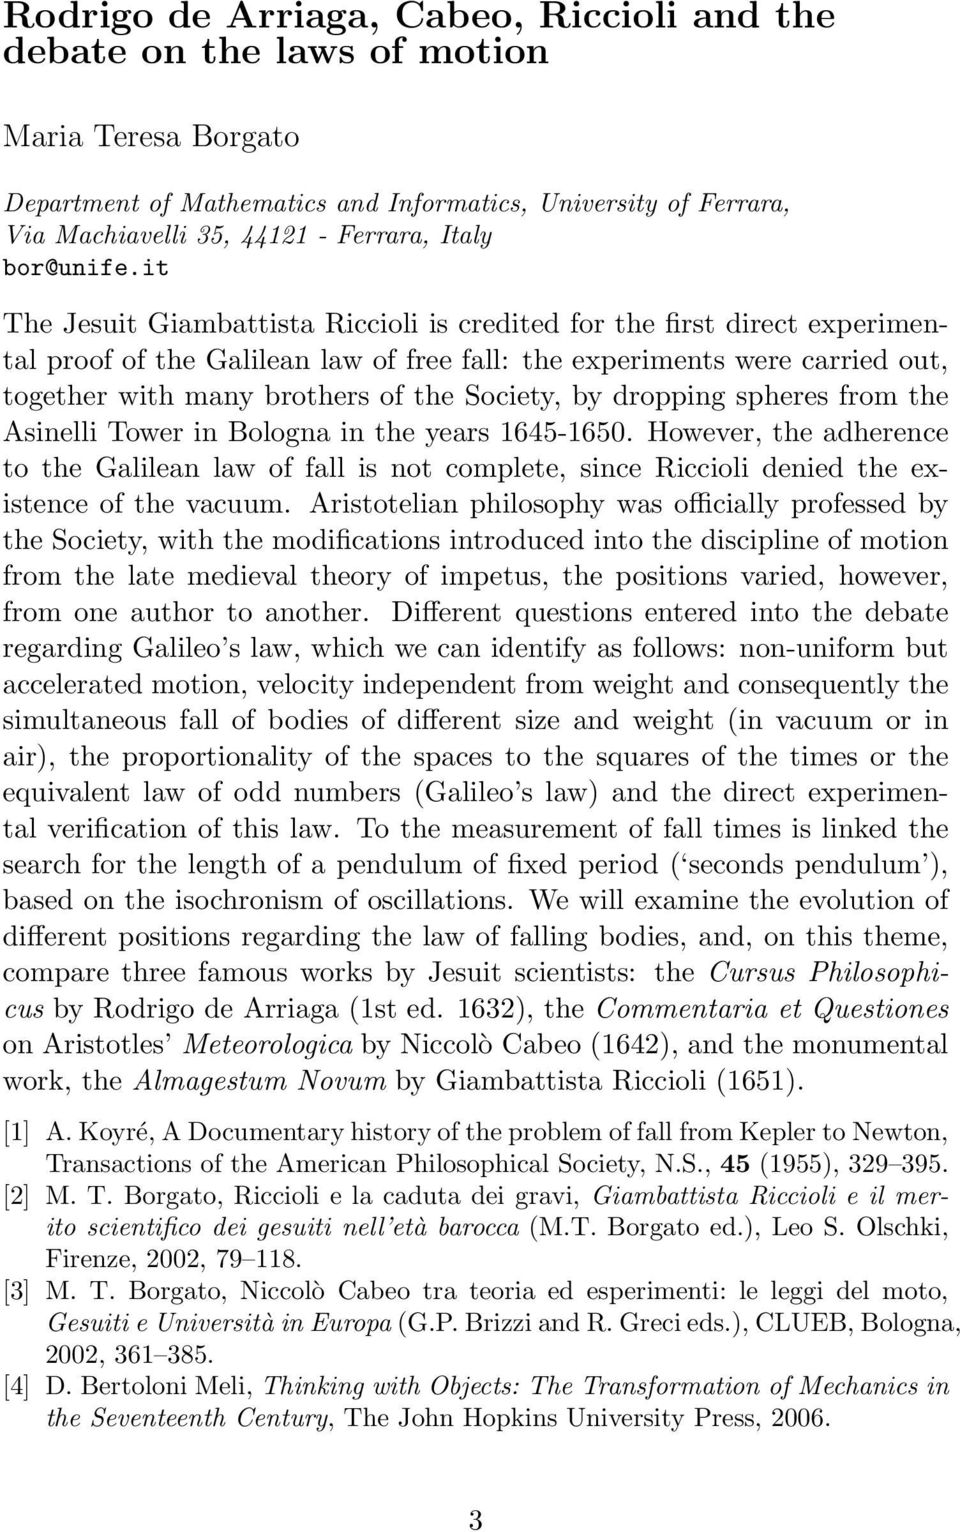 it The Jesuit Giambattista Riccioli is credited for the first direct experimental proof of the Galilean law of free fall: the experiments were carried out, together with many brothers of the Society,